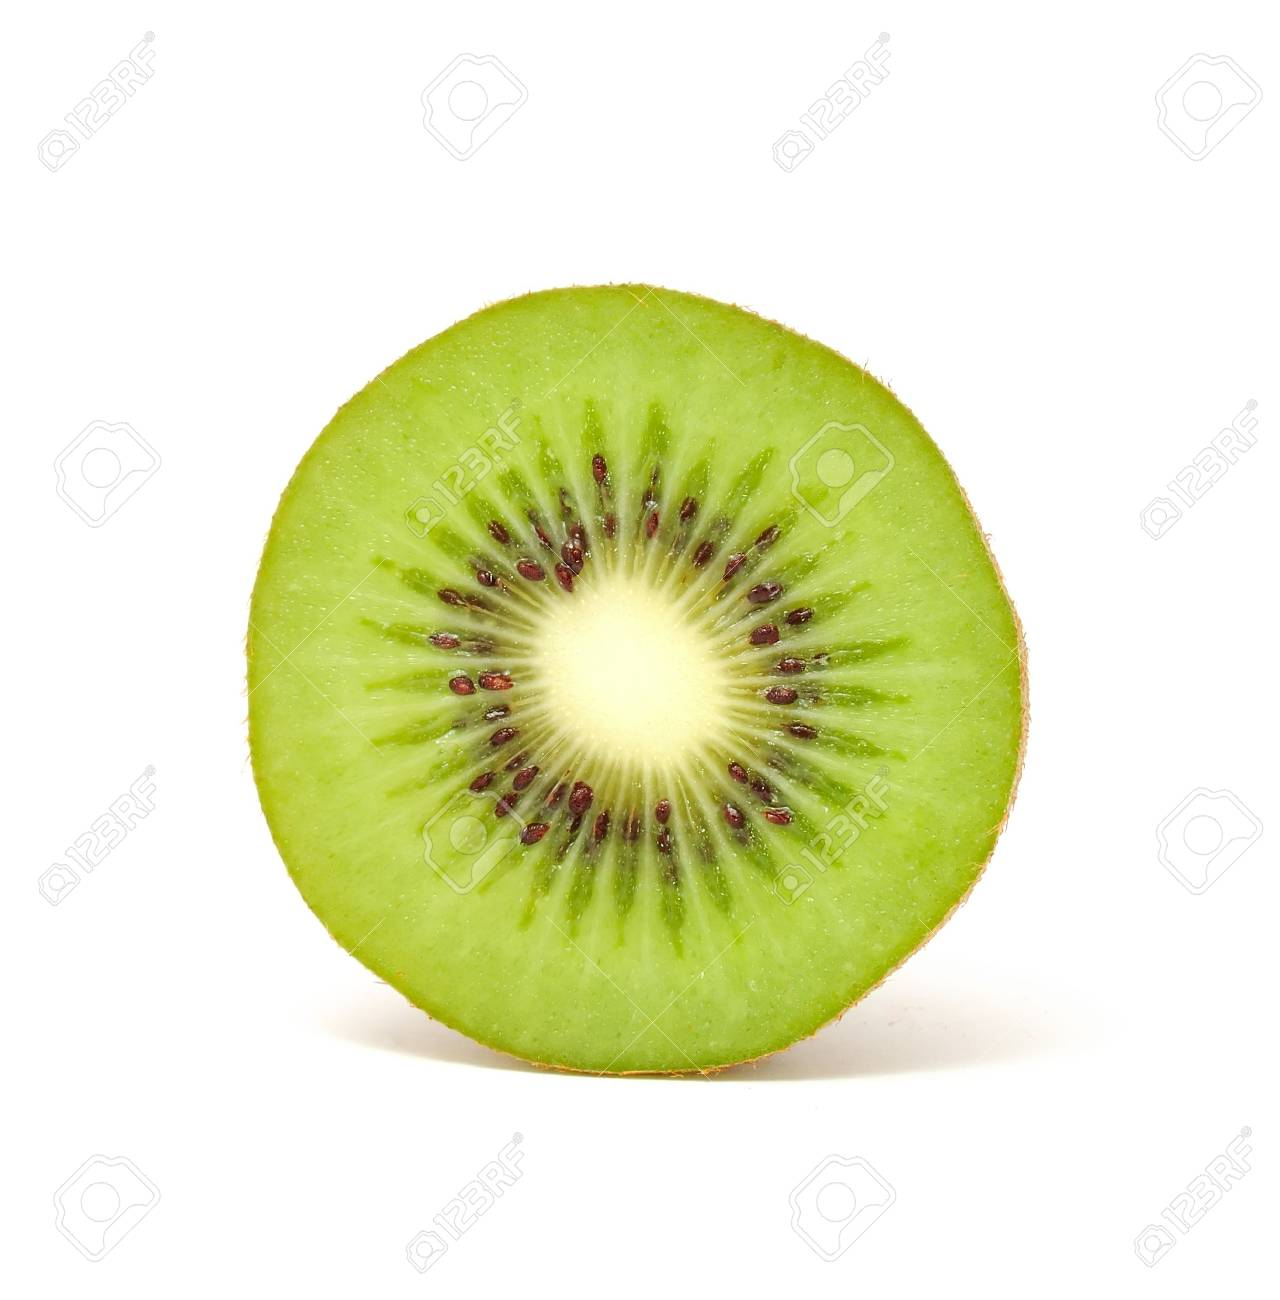 Slice of Kiwi Isolated on White Background Stock Photo - 8067370